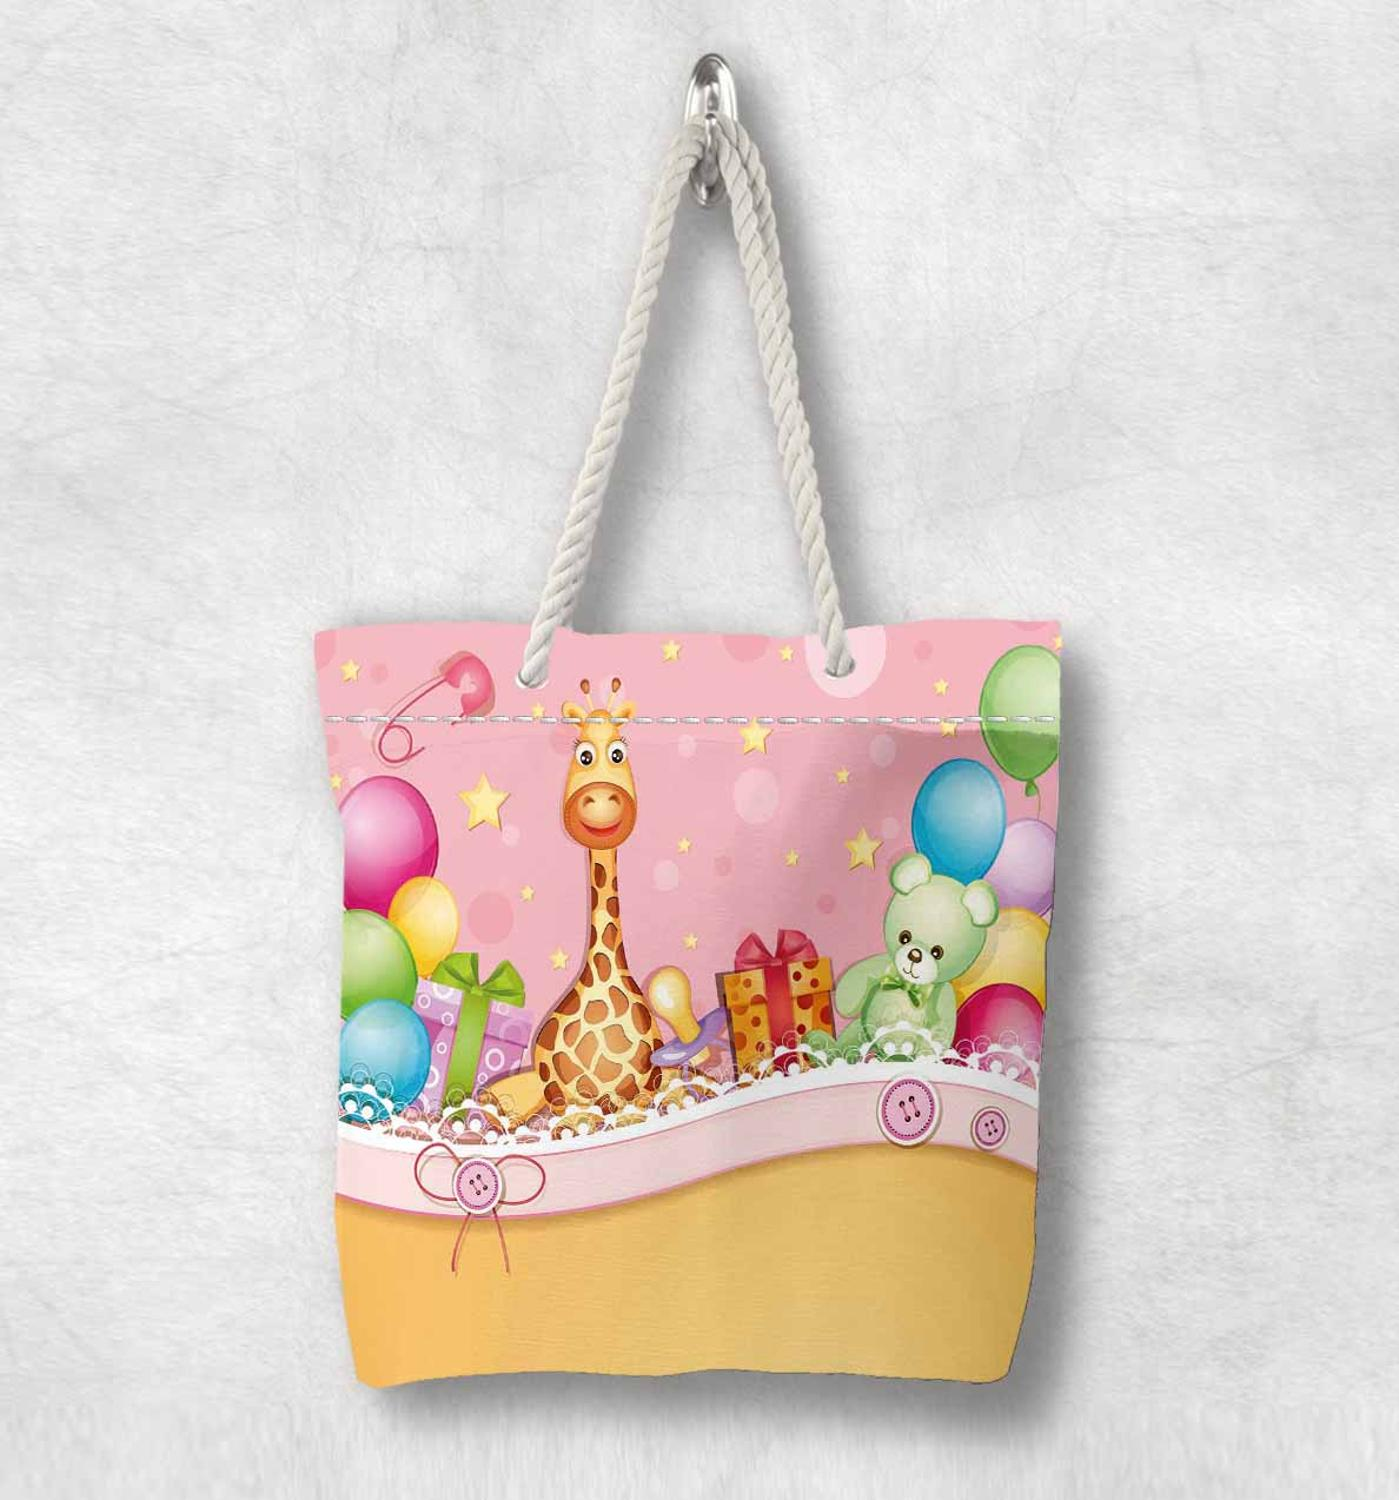 Else Baby Party Giraffe Colored Balloons New Fashion White Rope Handle Canvas Bag Cotton Canvas Zippered Tote Bag Shoulder Bag